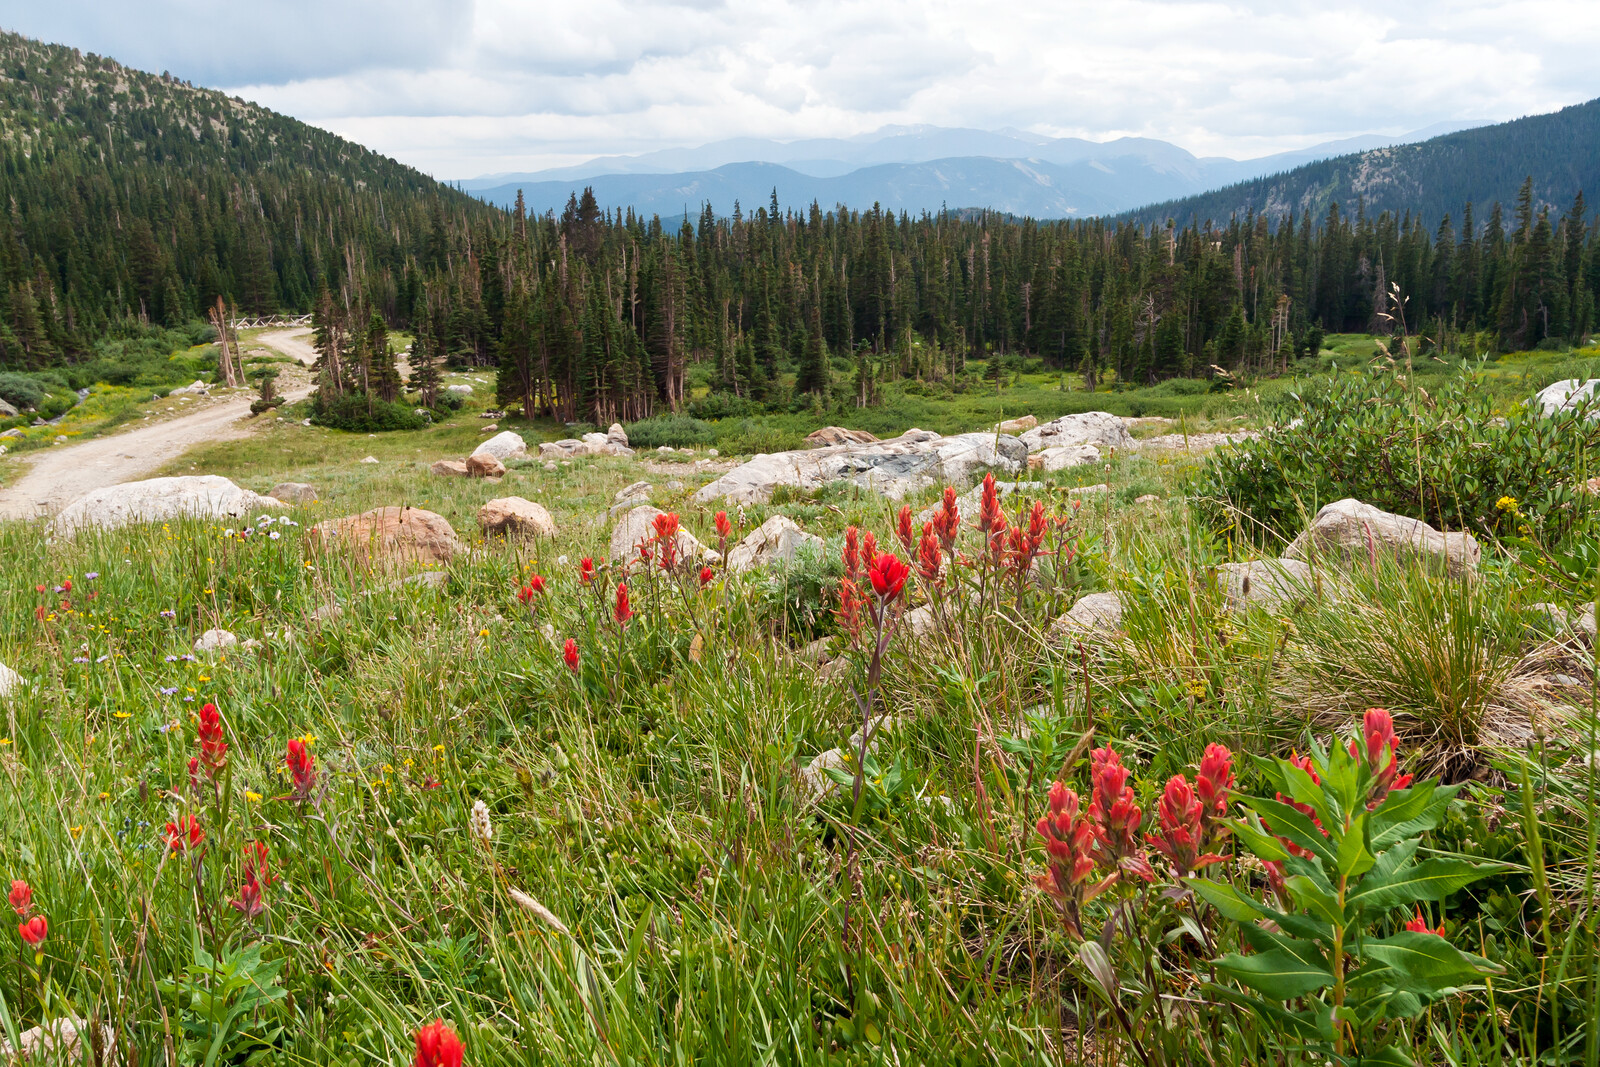 Red Wildflowers framing a dirt road, evergreens at the  base of the hills mountains in the background, white billowy clouds